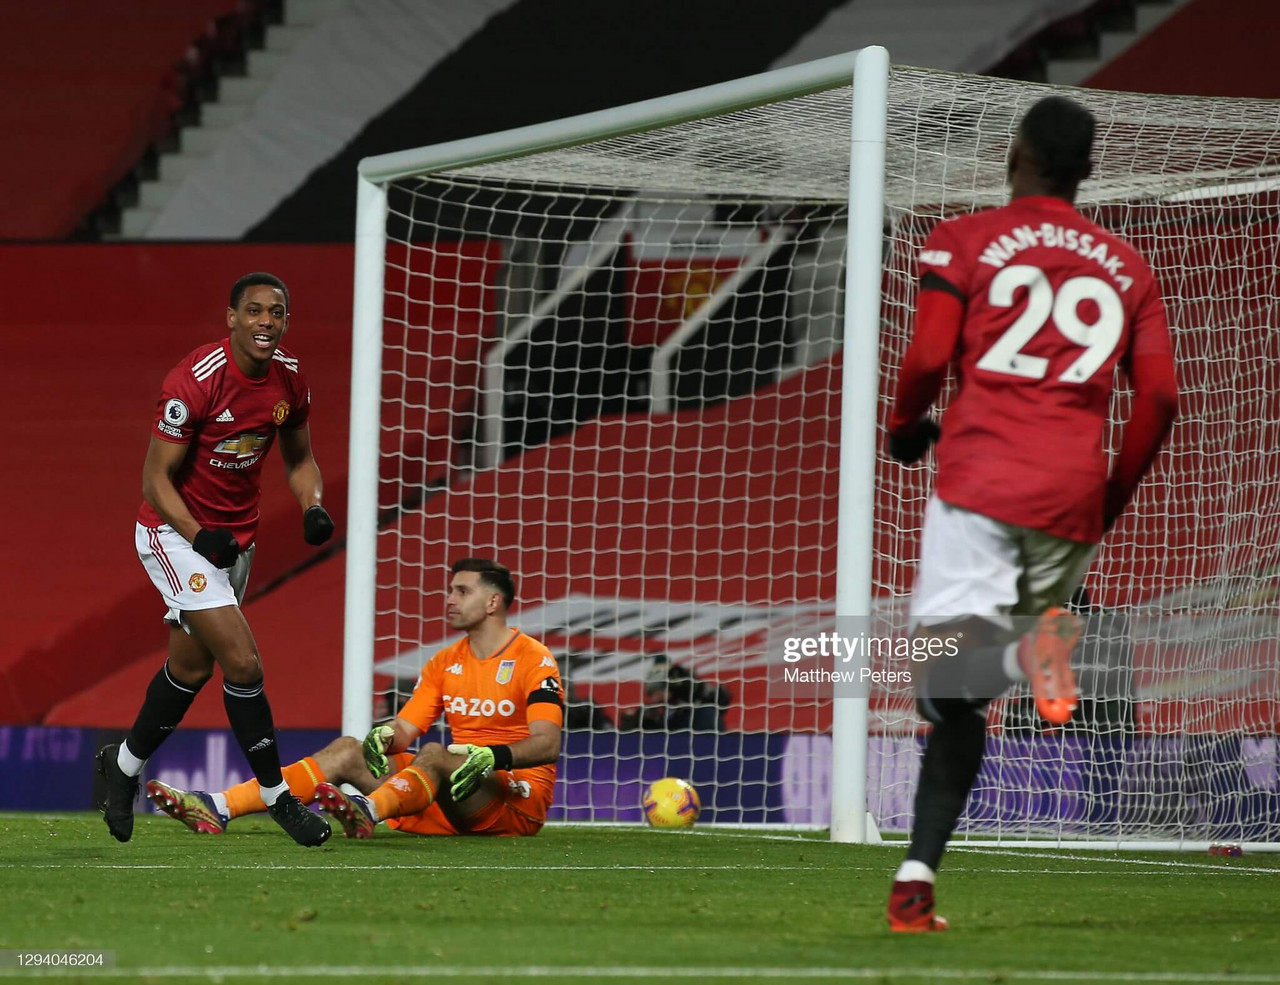 Manchester United 2-1 Aston Villa: Player ratings